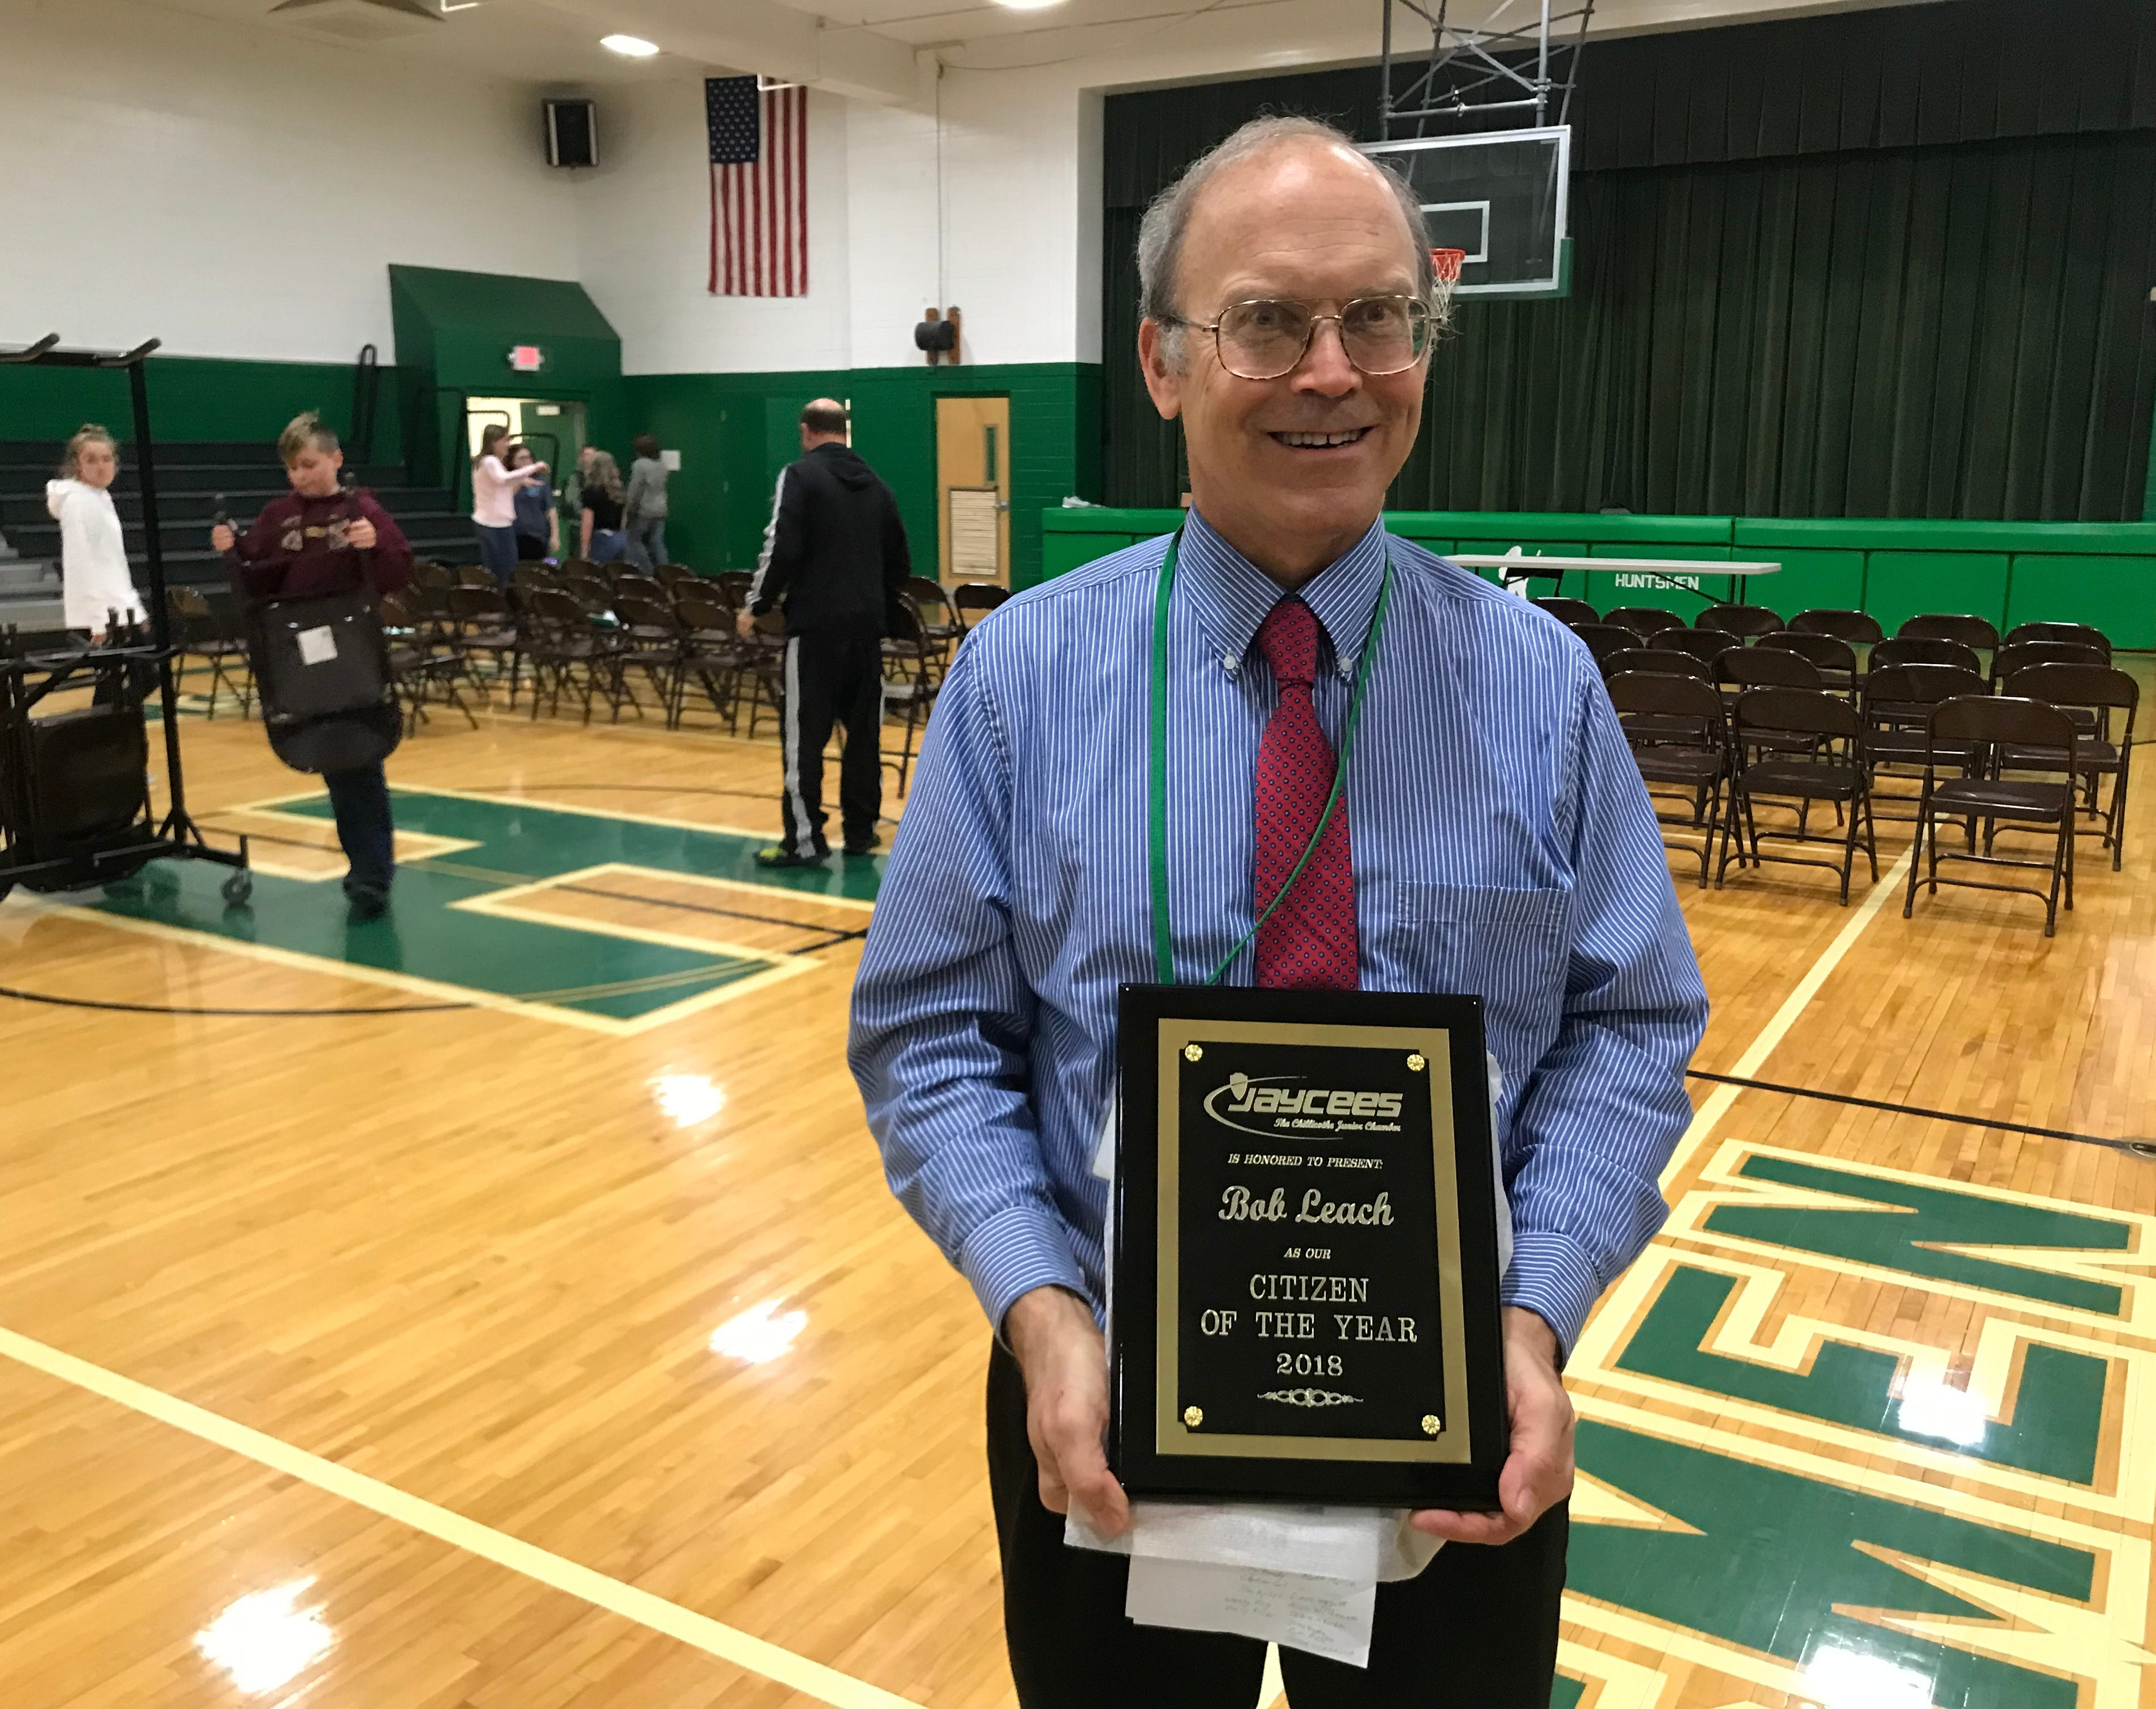 Robert 'Bob' Leach was awarded the Chillicothe Jaycees 2018 Citizen of the Year award because of his dedication and service to local veterans, students and the community.